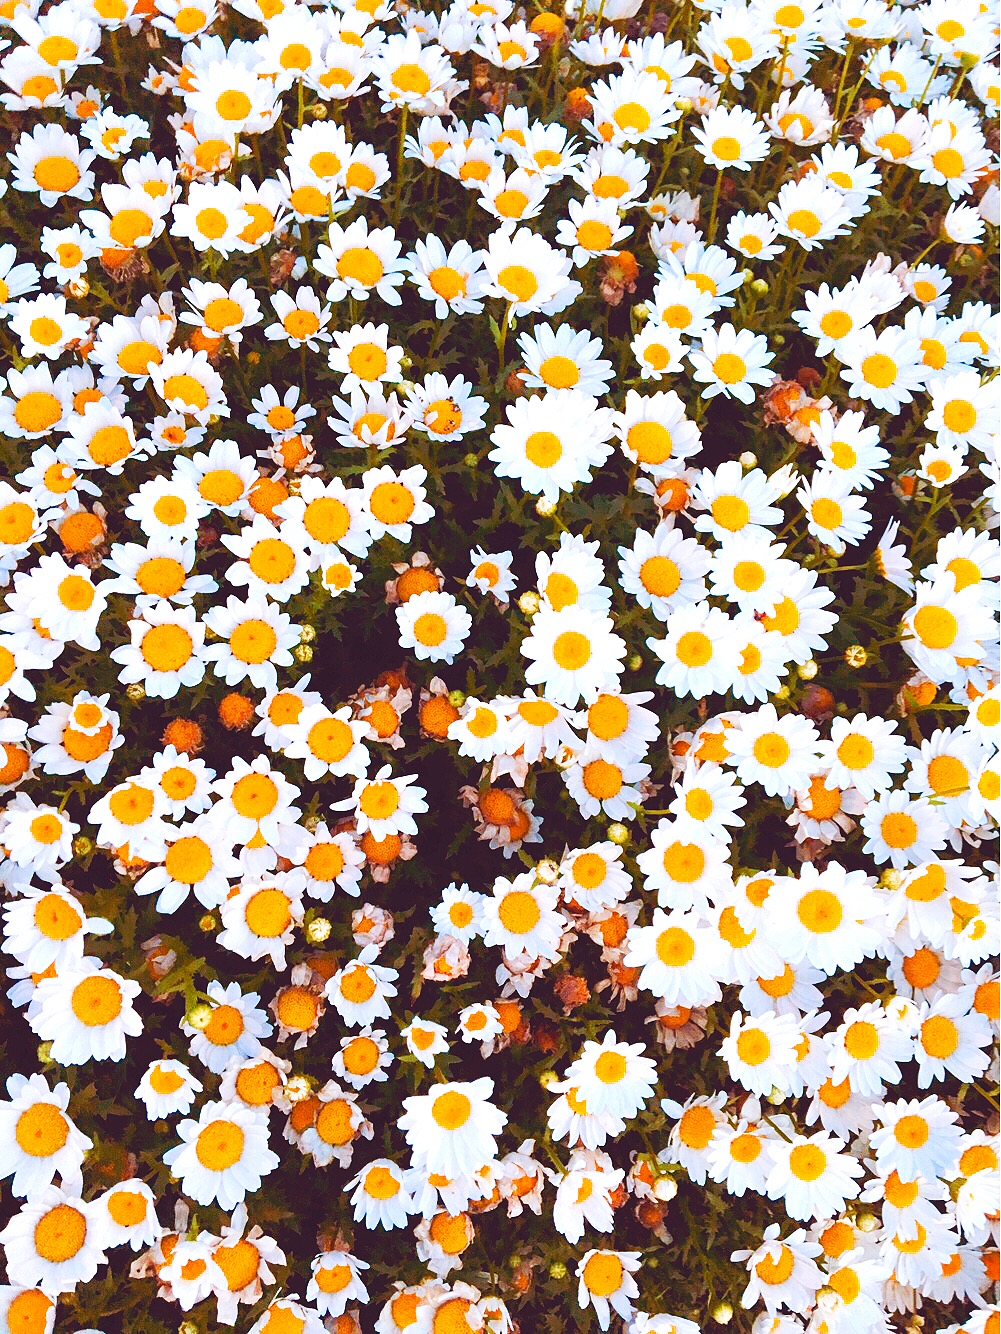 THE FUNKY FRESH / DAISY FLOWER PATTERN